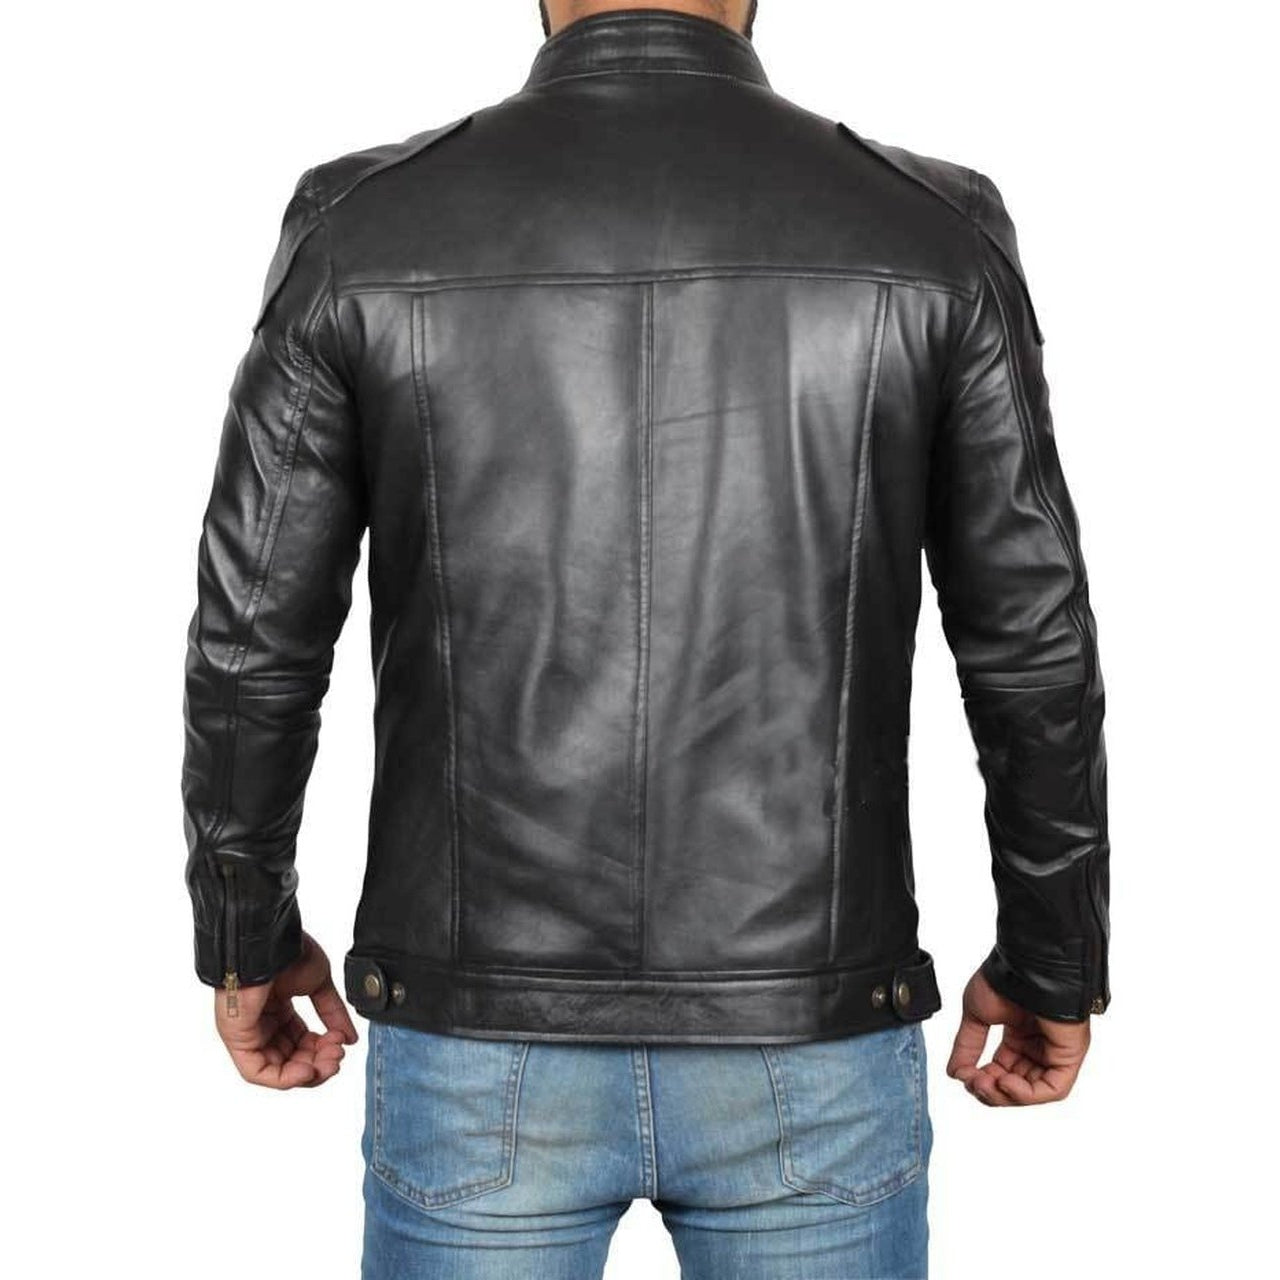 Real Biker Genuine Leather Jacket - Leather Jacket